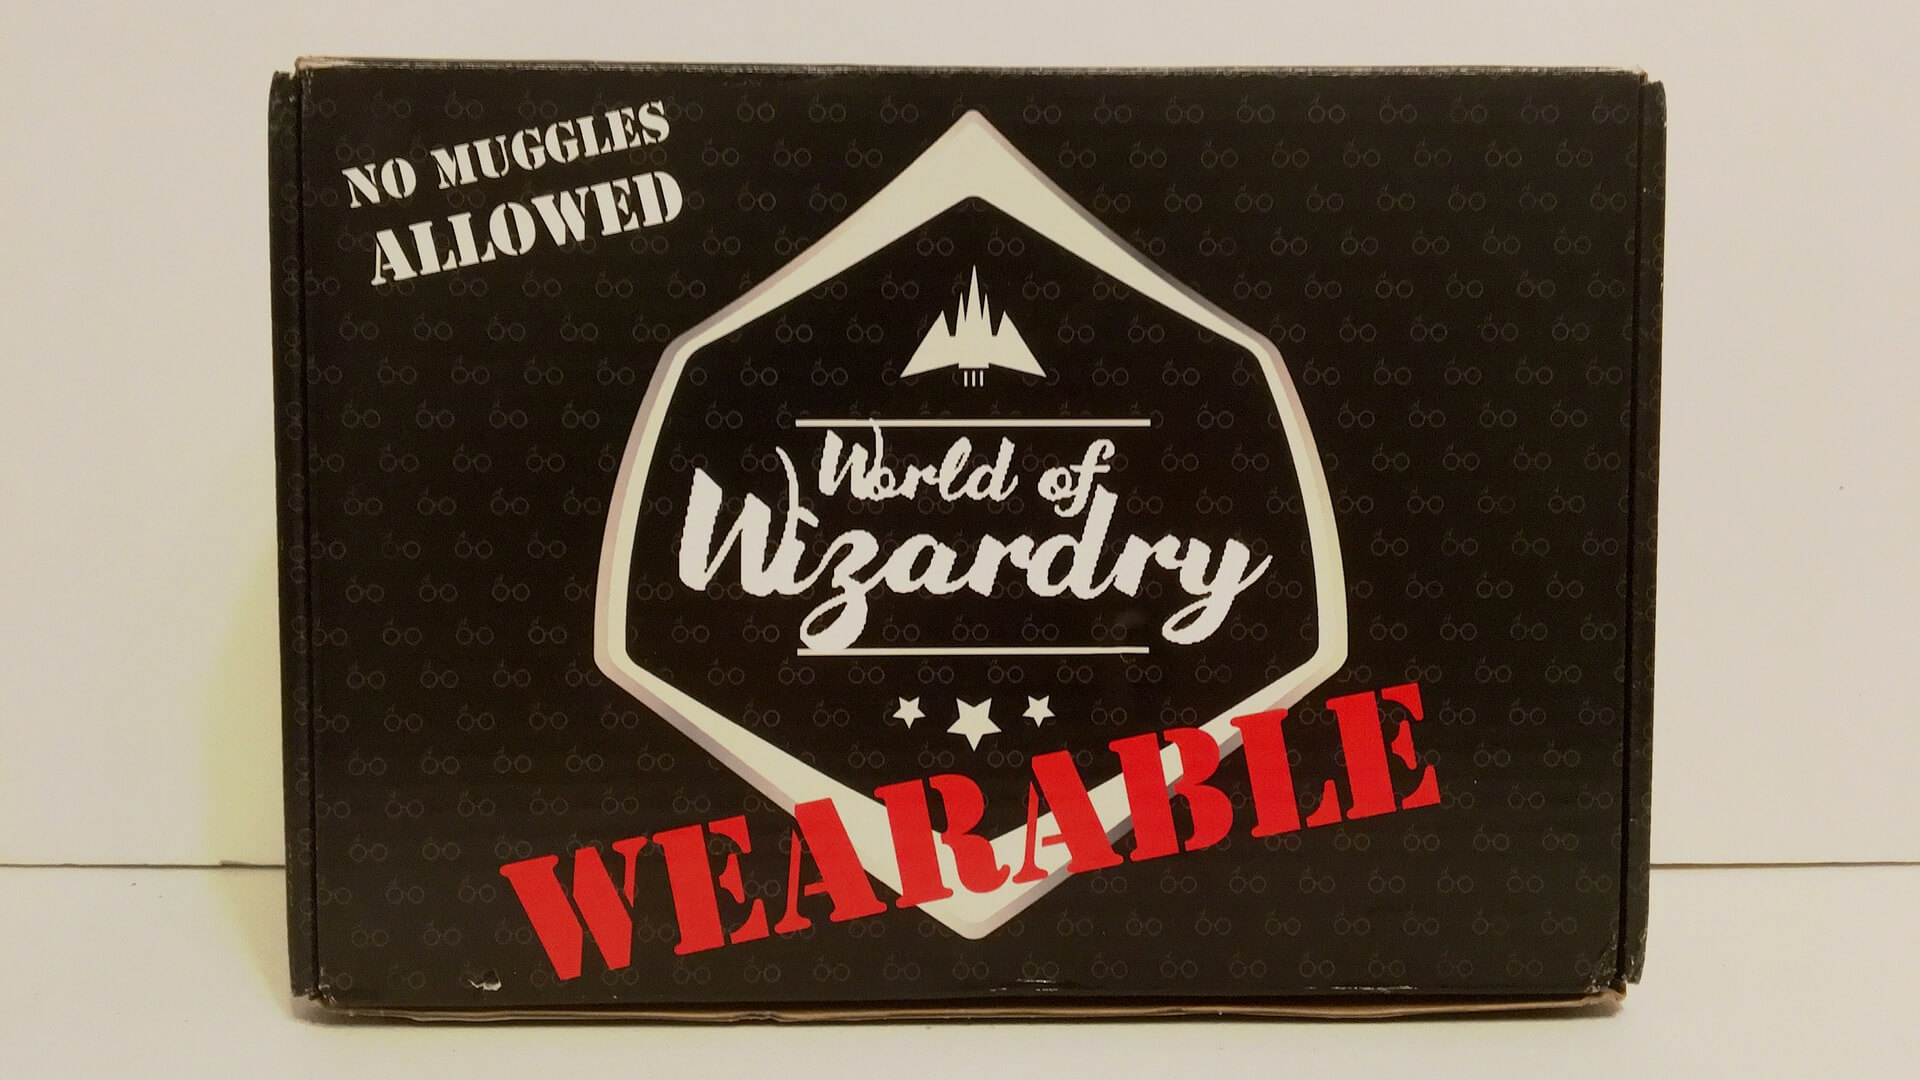 Geek Gear World of Wizardry Wearable:  It's All About Courage - Review